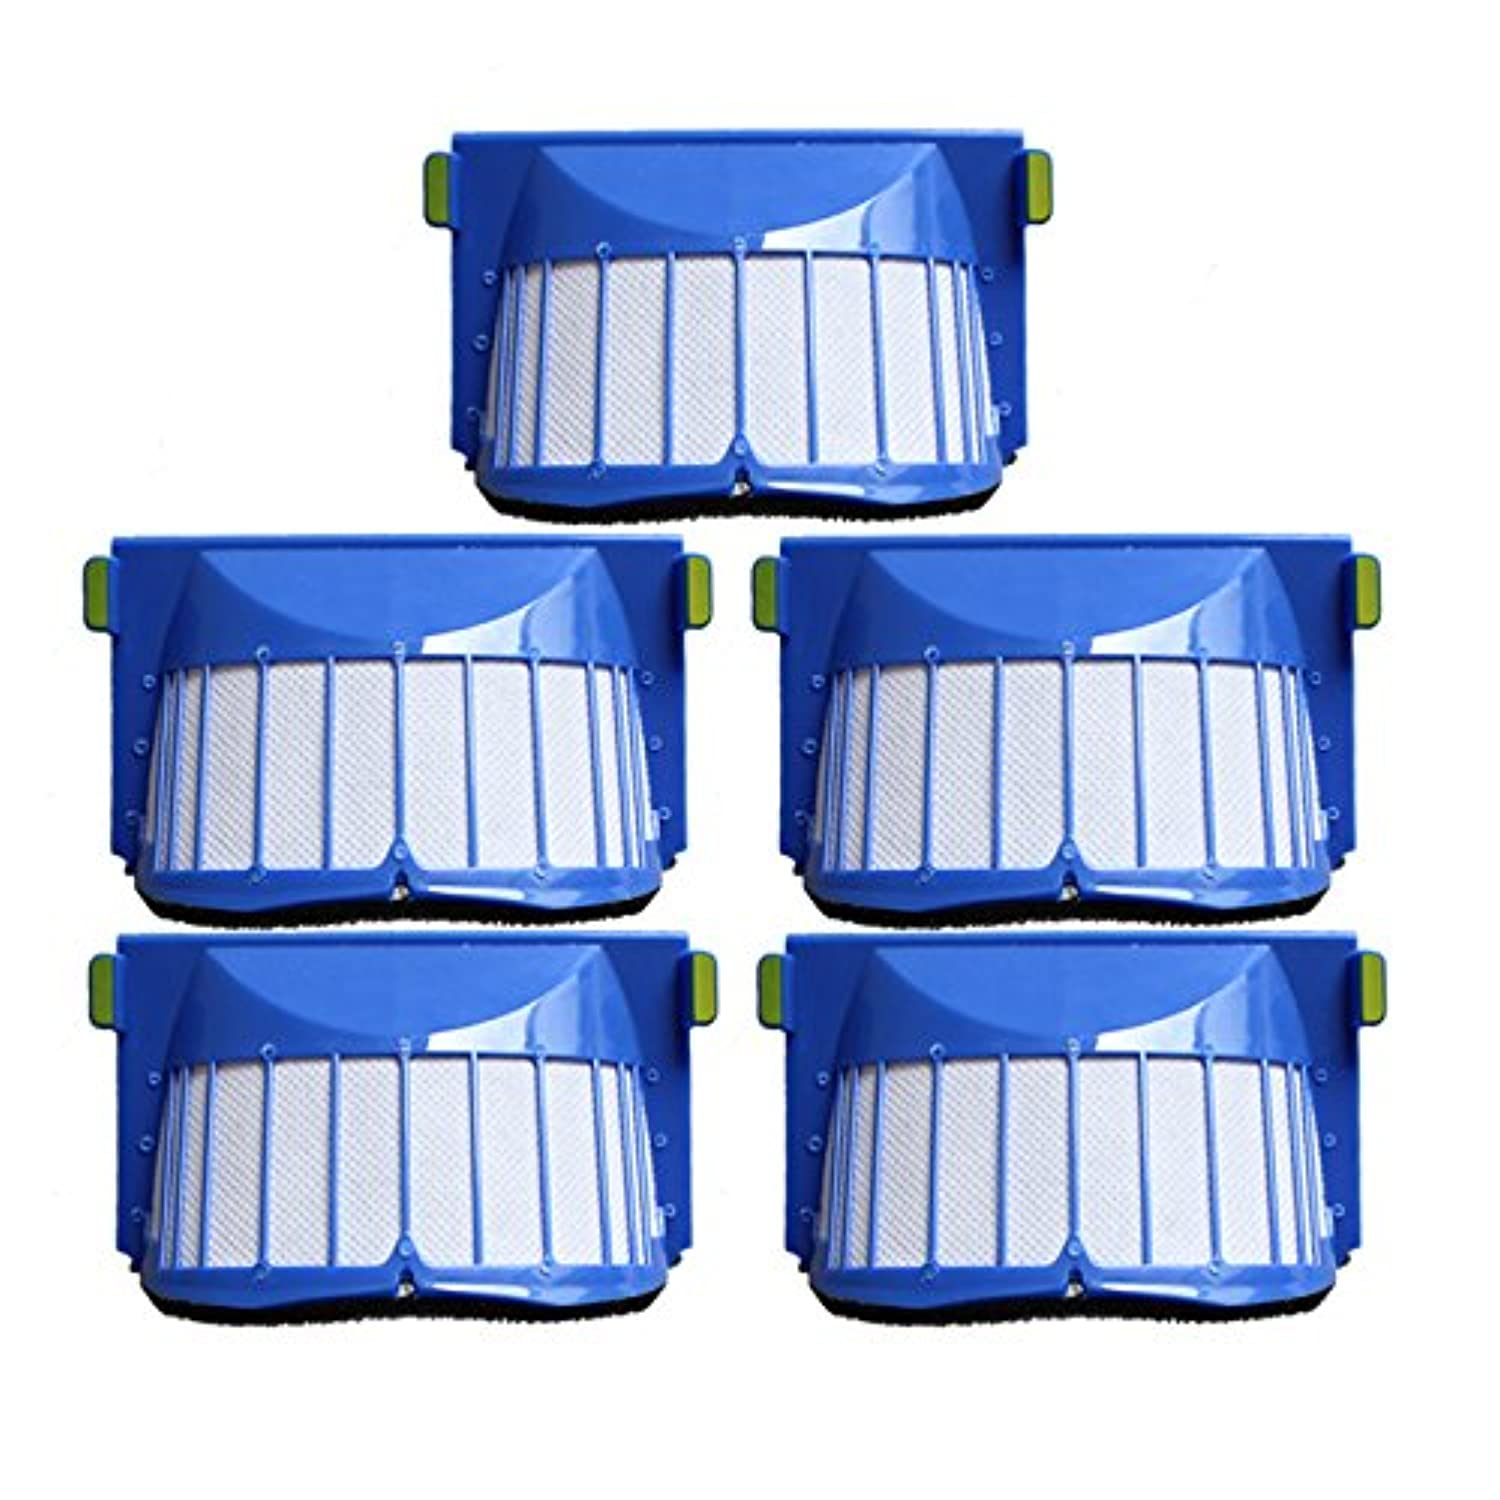 Zhhlinyuan 5pcs 掃除機アクセサリー Cotton Filter Accessories Perfect Fit for iRobo Roomb 601 527E 529 528 56708 Cleaning Robot